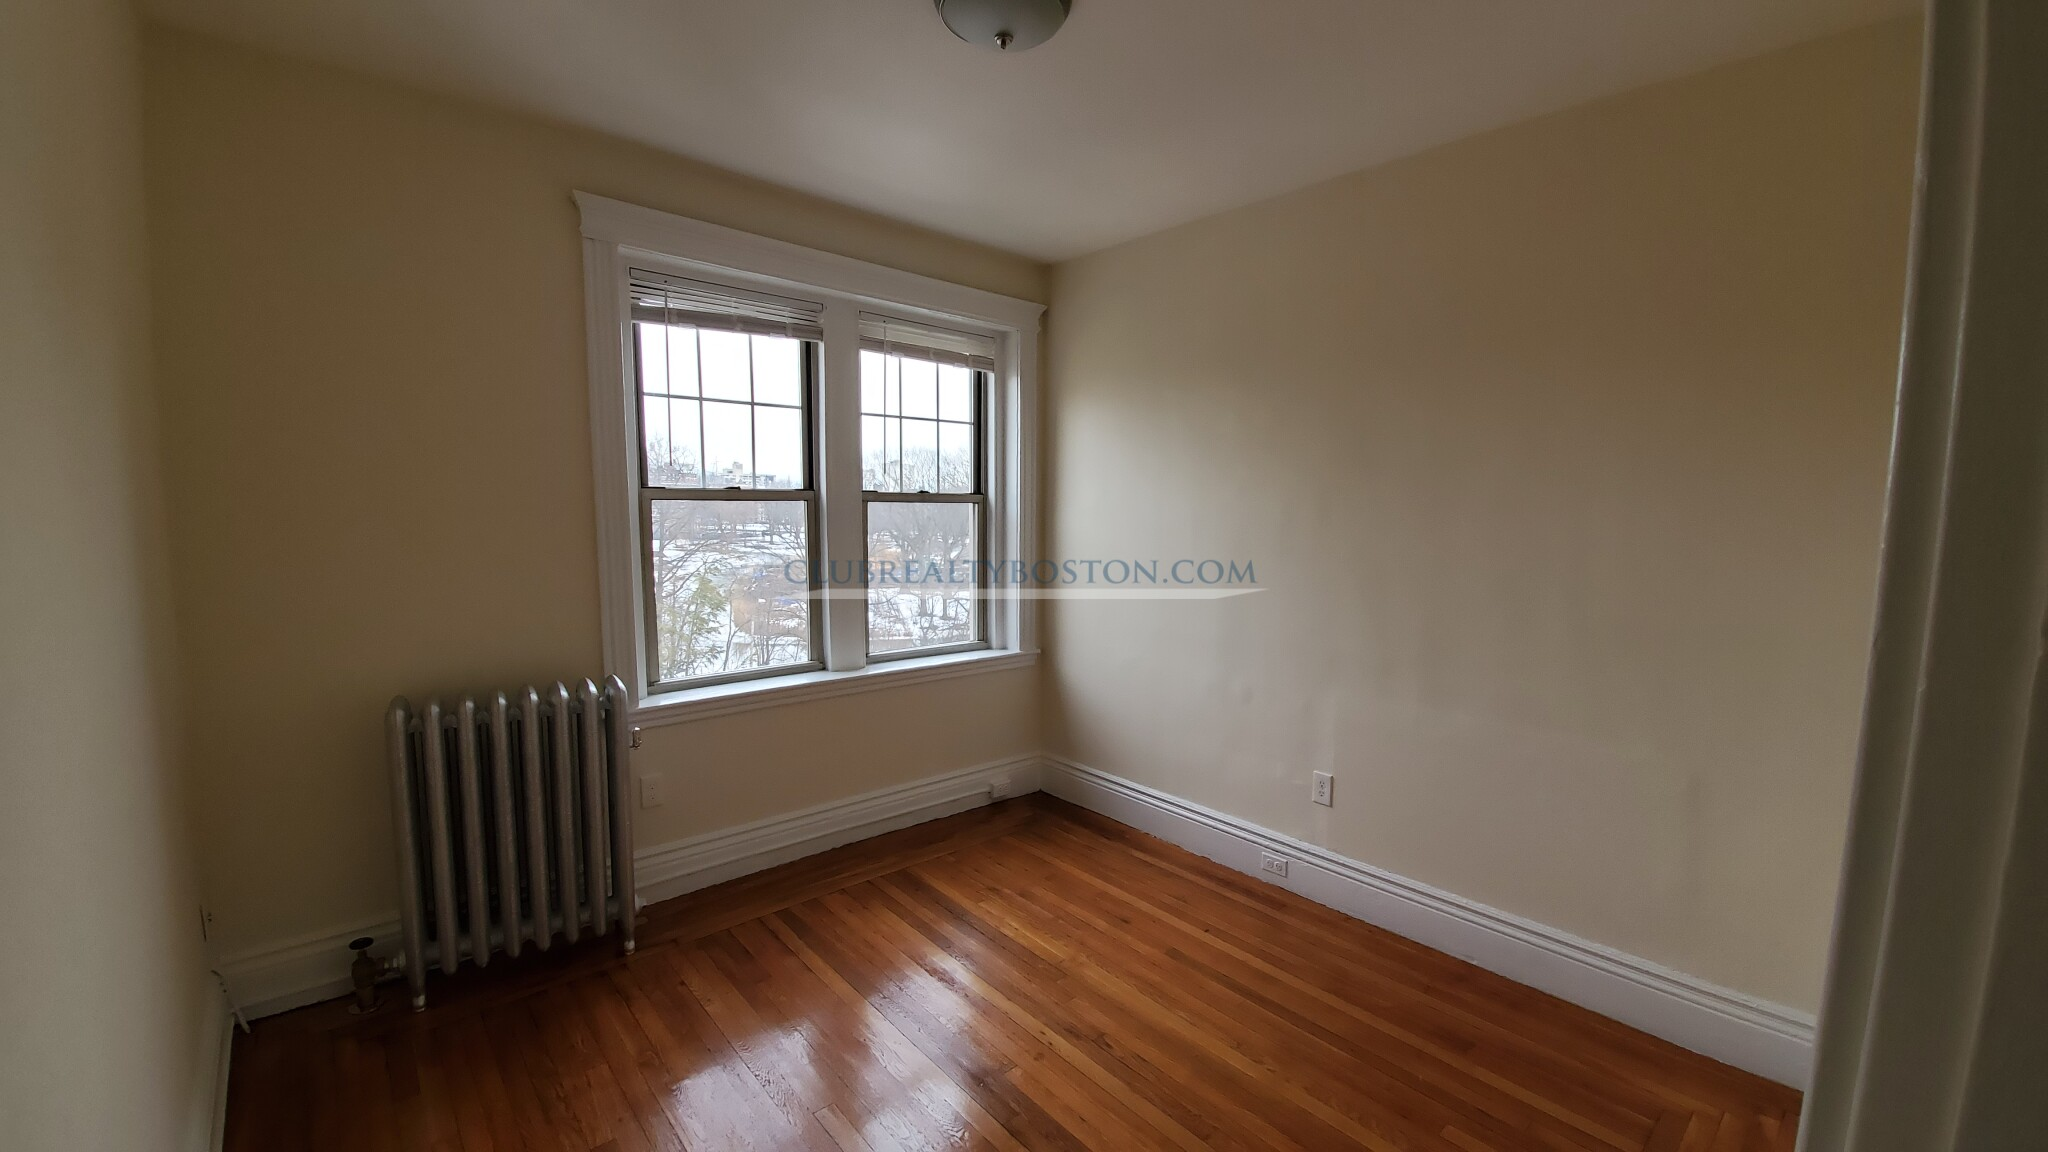 Studio, 1 Bath apartment in Boston, Fenway for $1,500